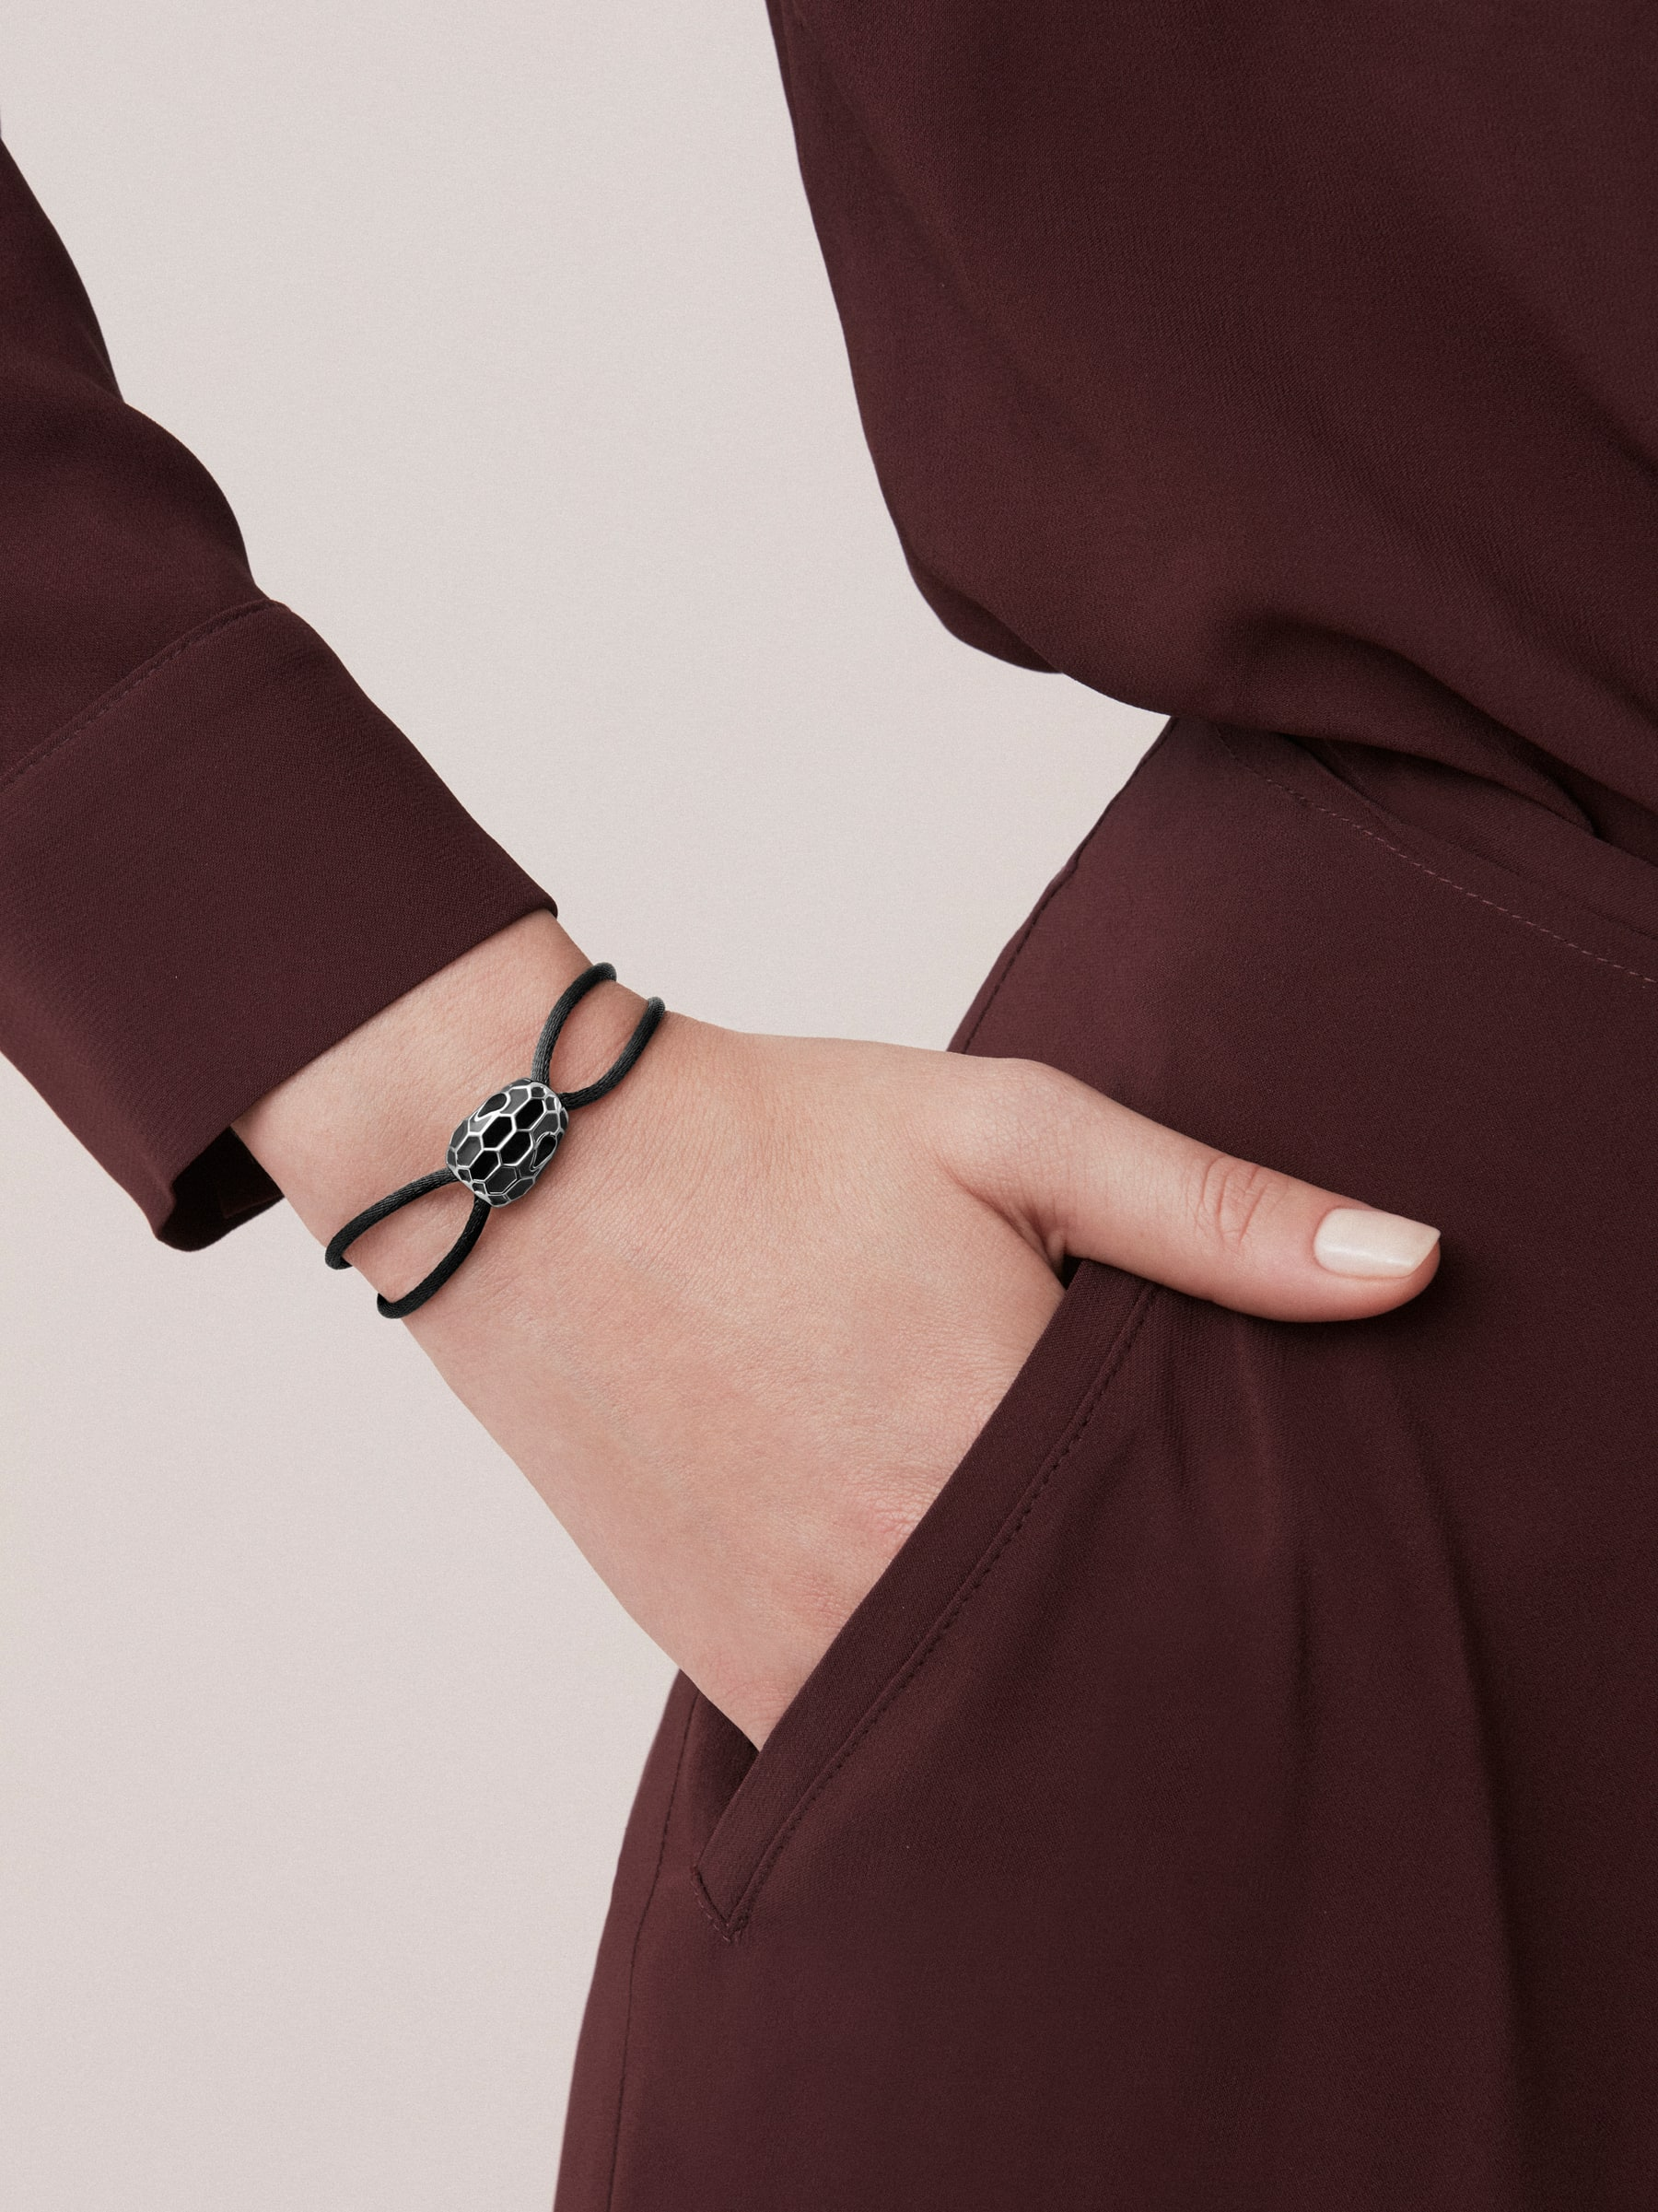 """Serpenti Forever"" bracelet in fire amber silk with an iconic snakehead décor in fire amber and black enamel with seducing eyes in black enamel. SERP-STRINGa image 2"